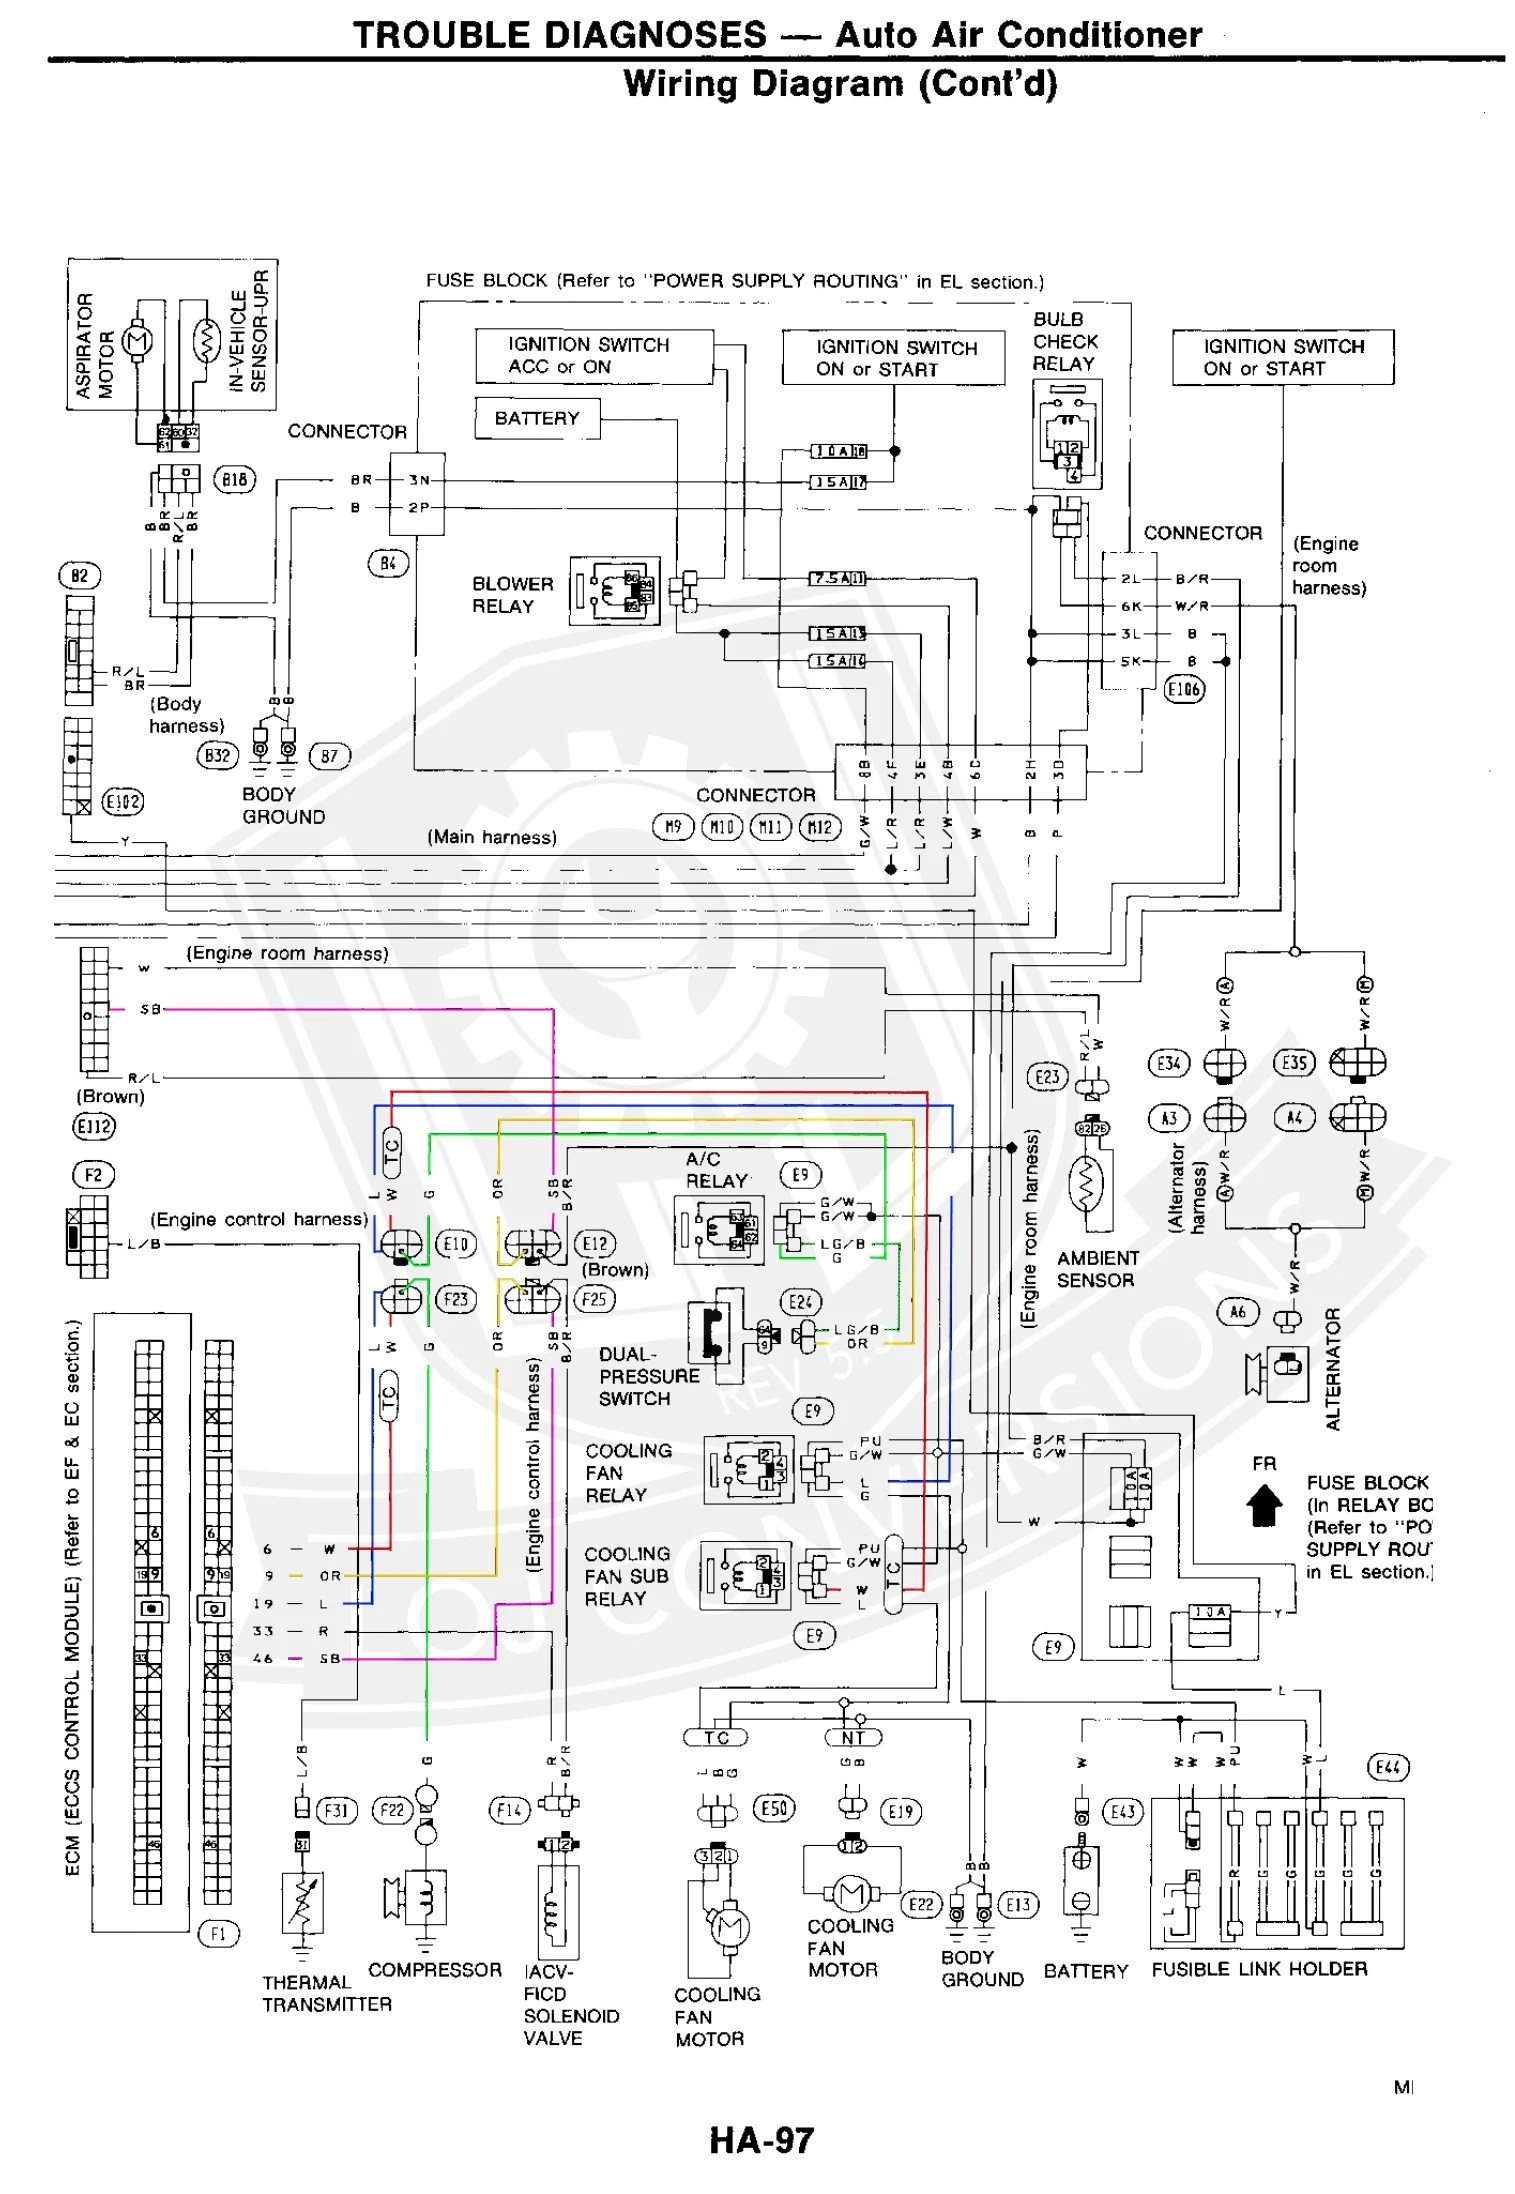 medium resolution of 1977 280z fuse box wiring diagram1977 280z fuse box today wiring diagram